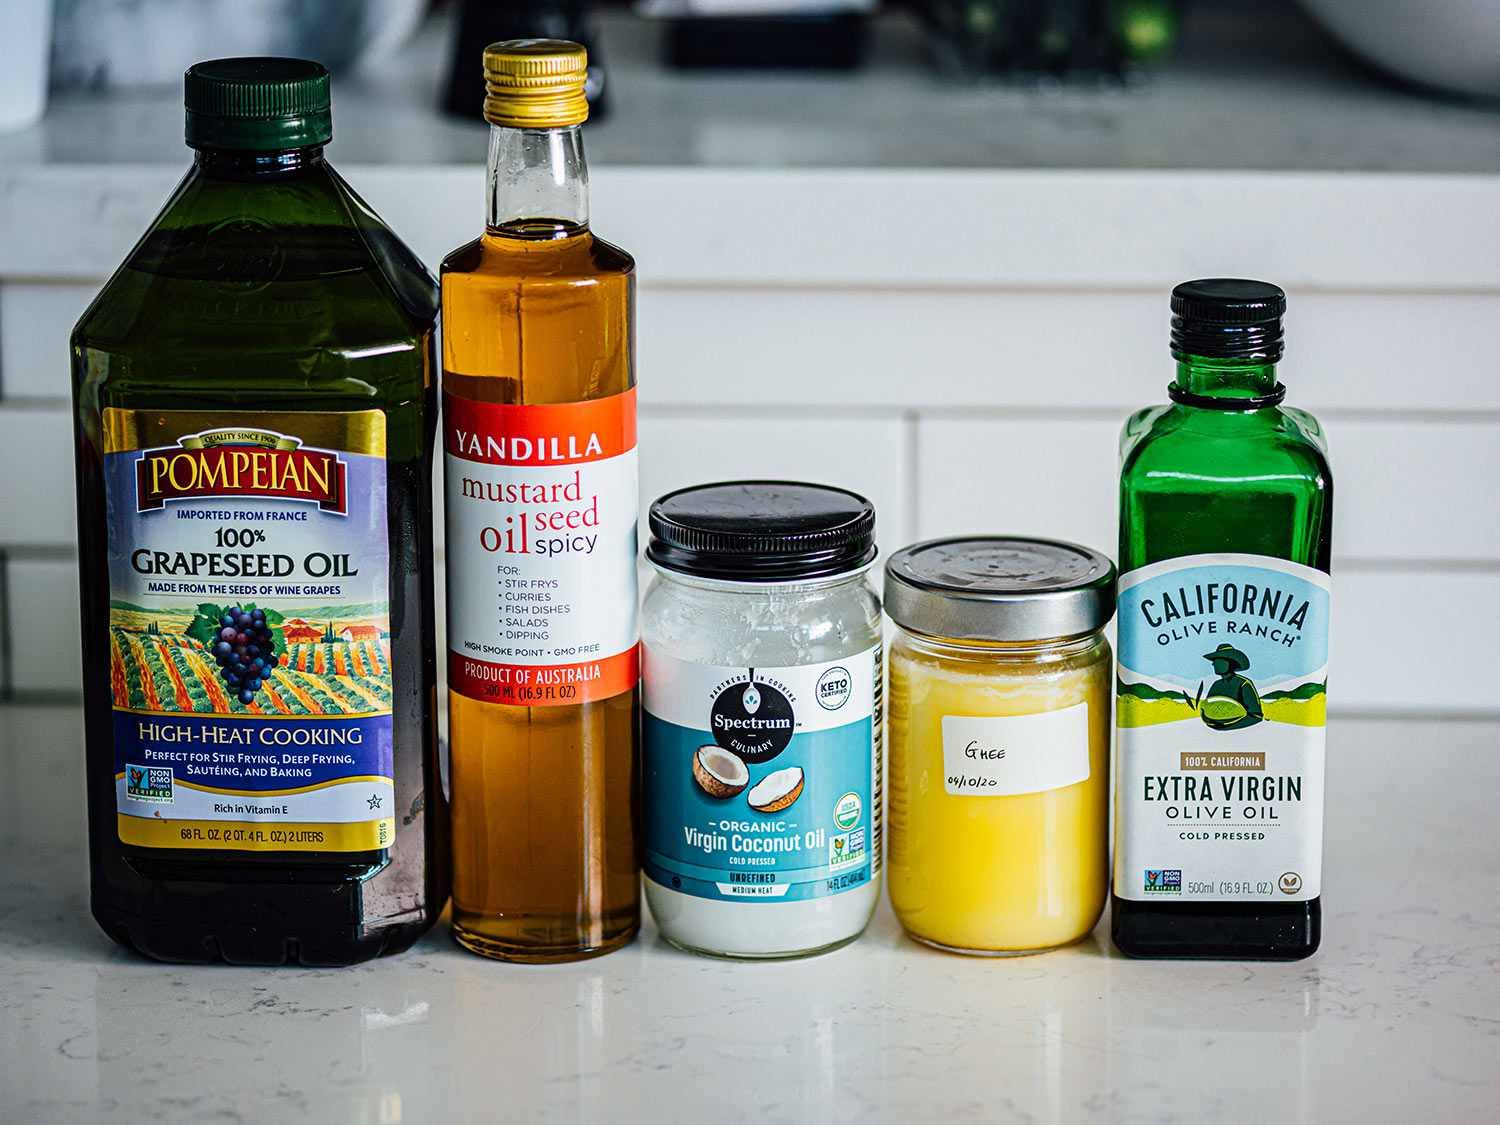 Grapeseed oil, mustard seed oil, coconut oil, ghee, and extra virgin olive oil in a row on a kitchen counter